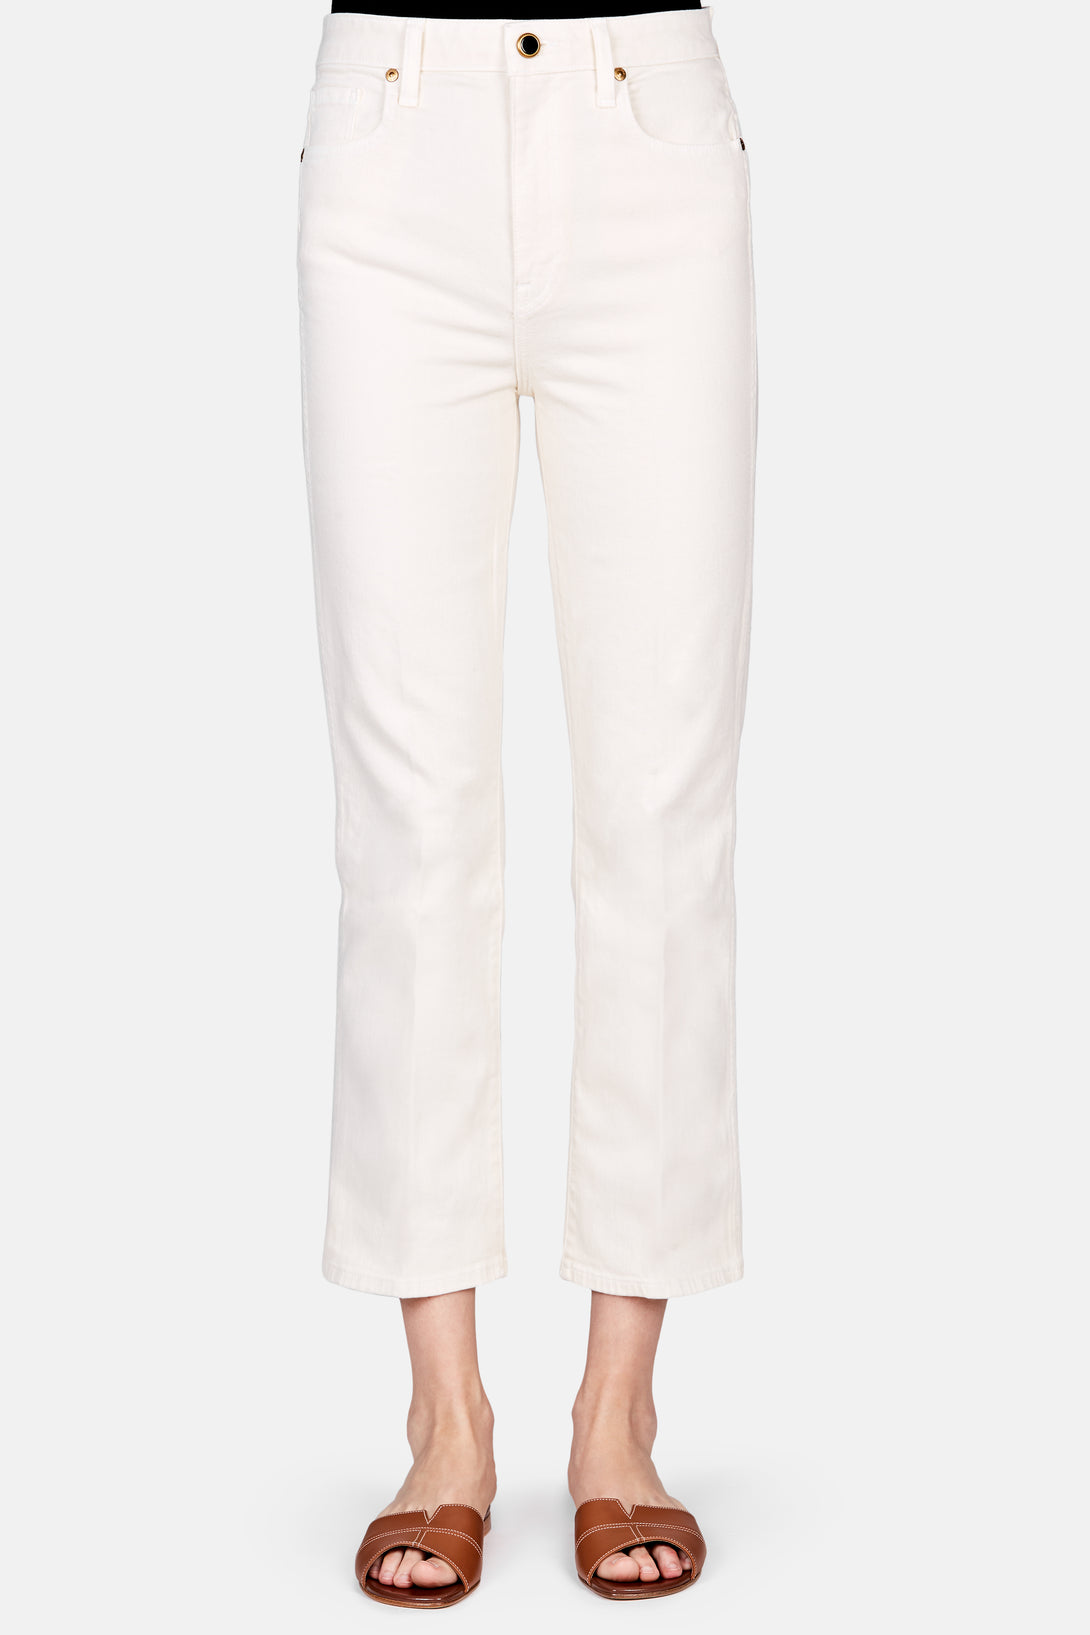 Benny Cropped Flare Jean - Ivory